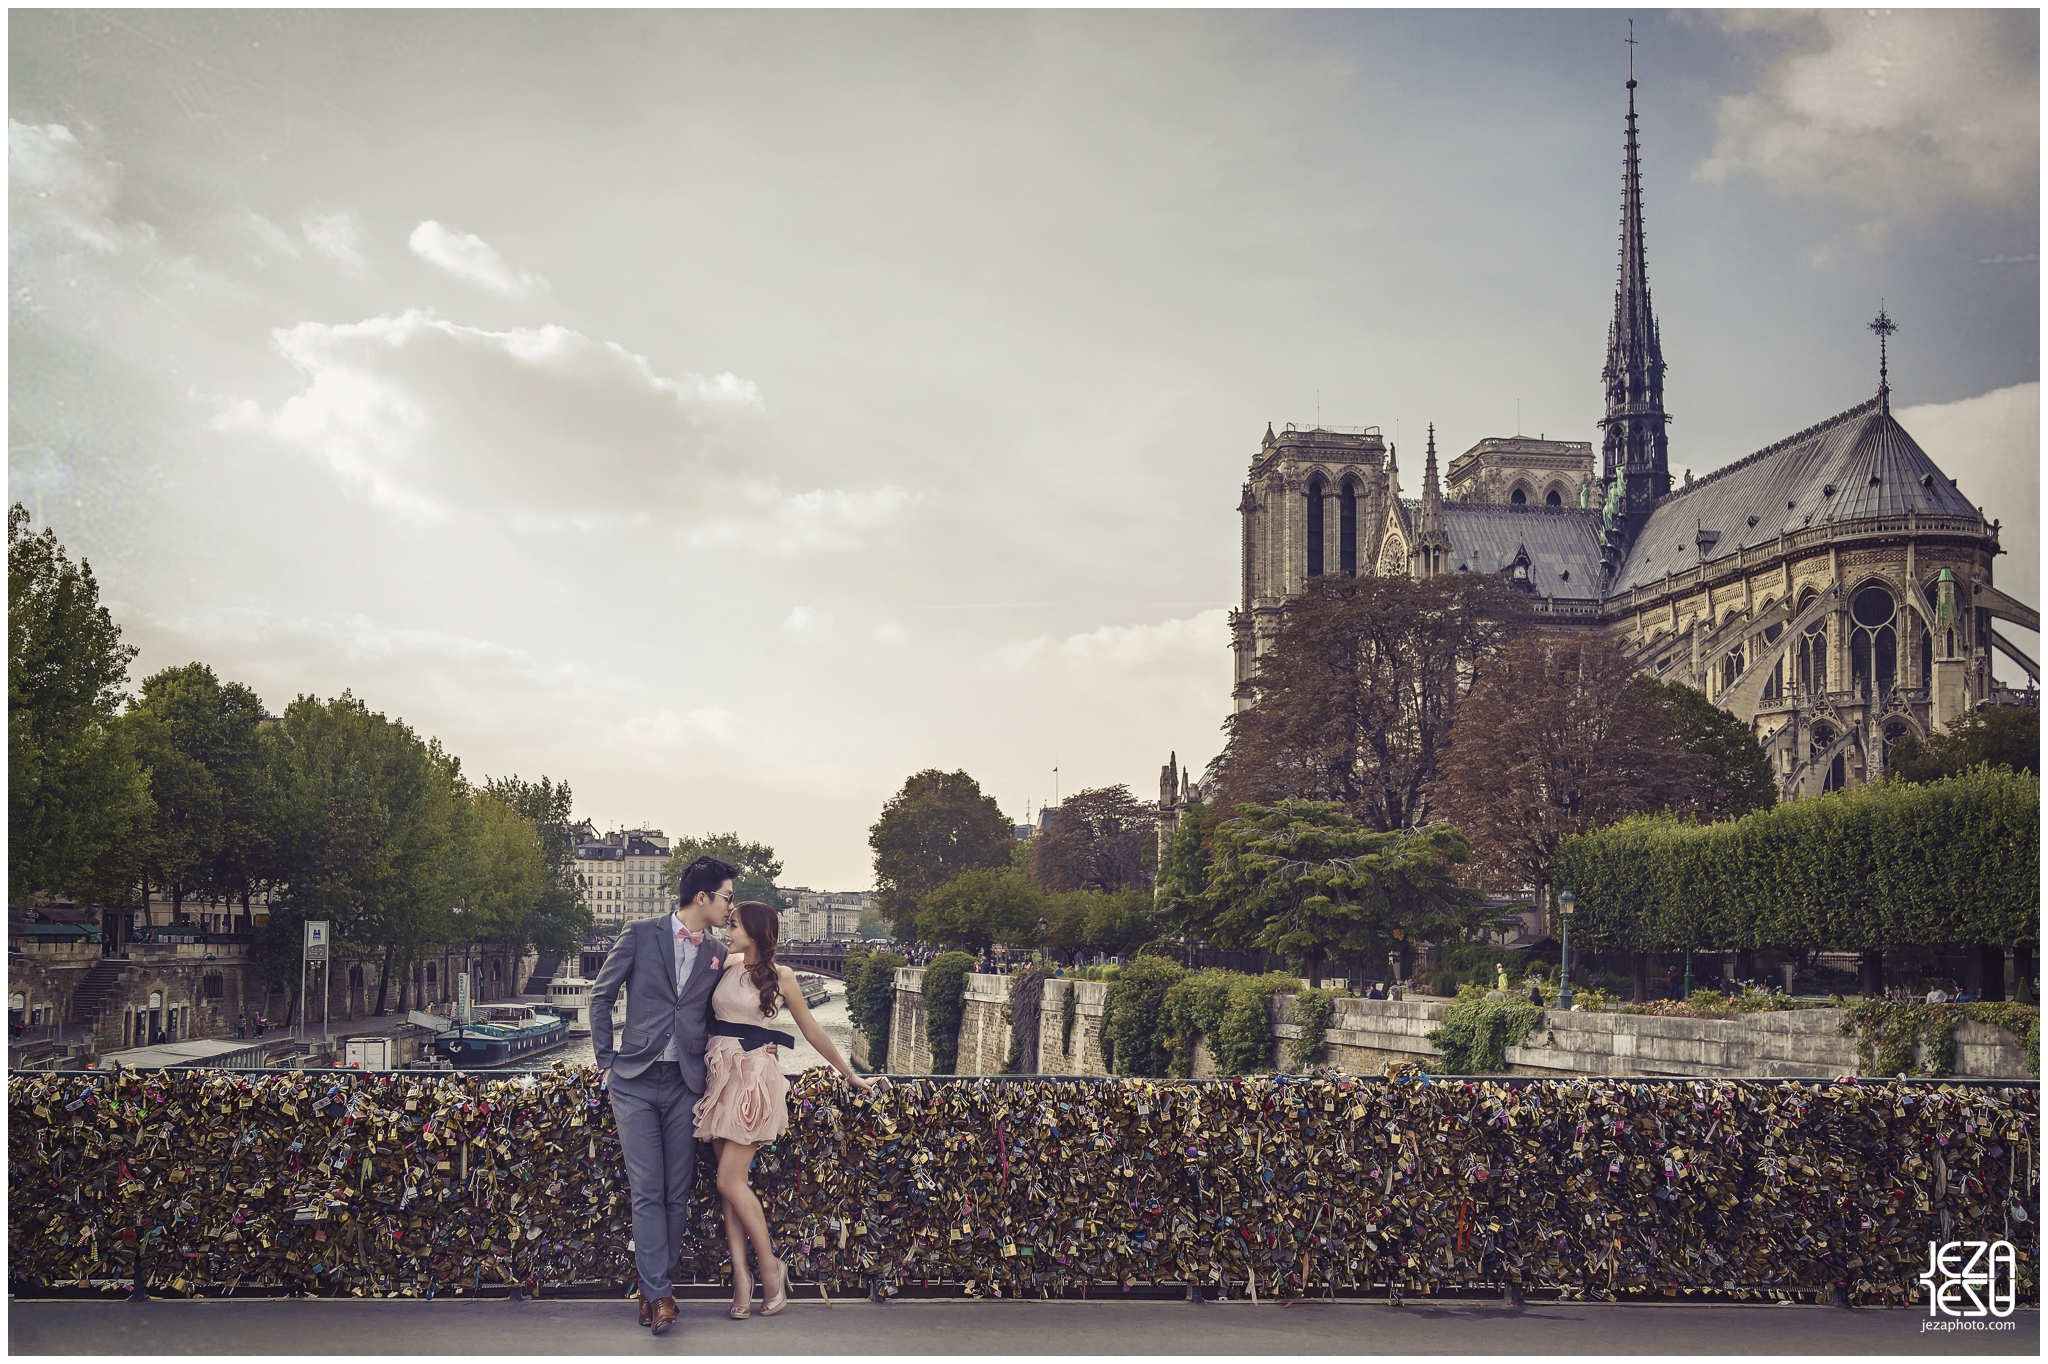 jeza paris notre dame cathedral pre-wedding photo